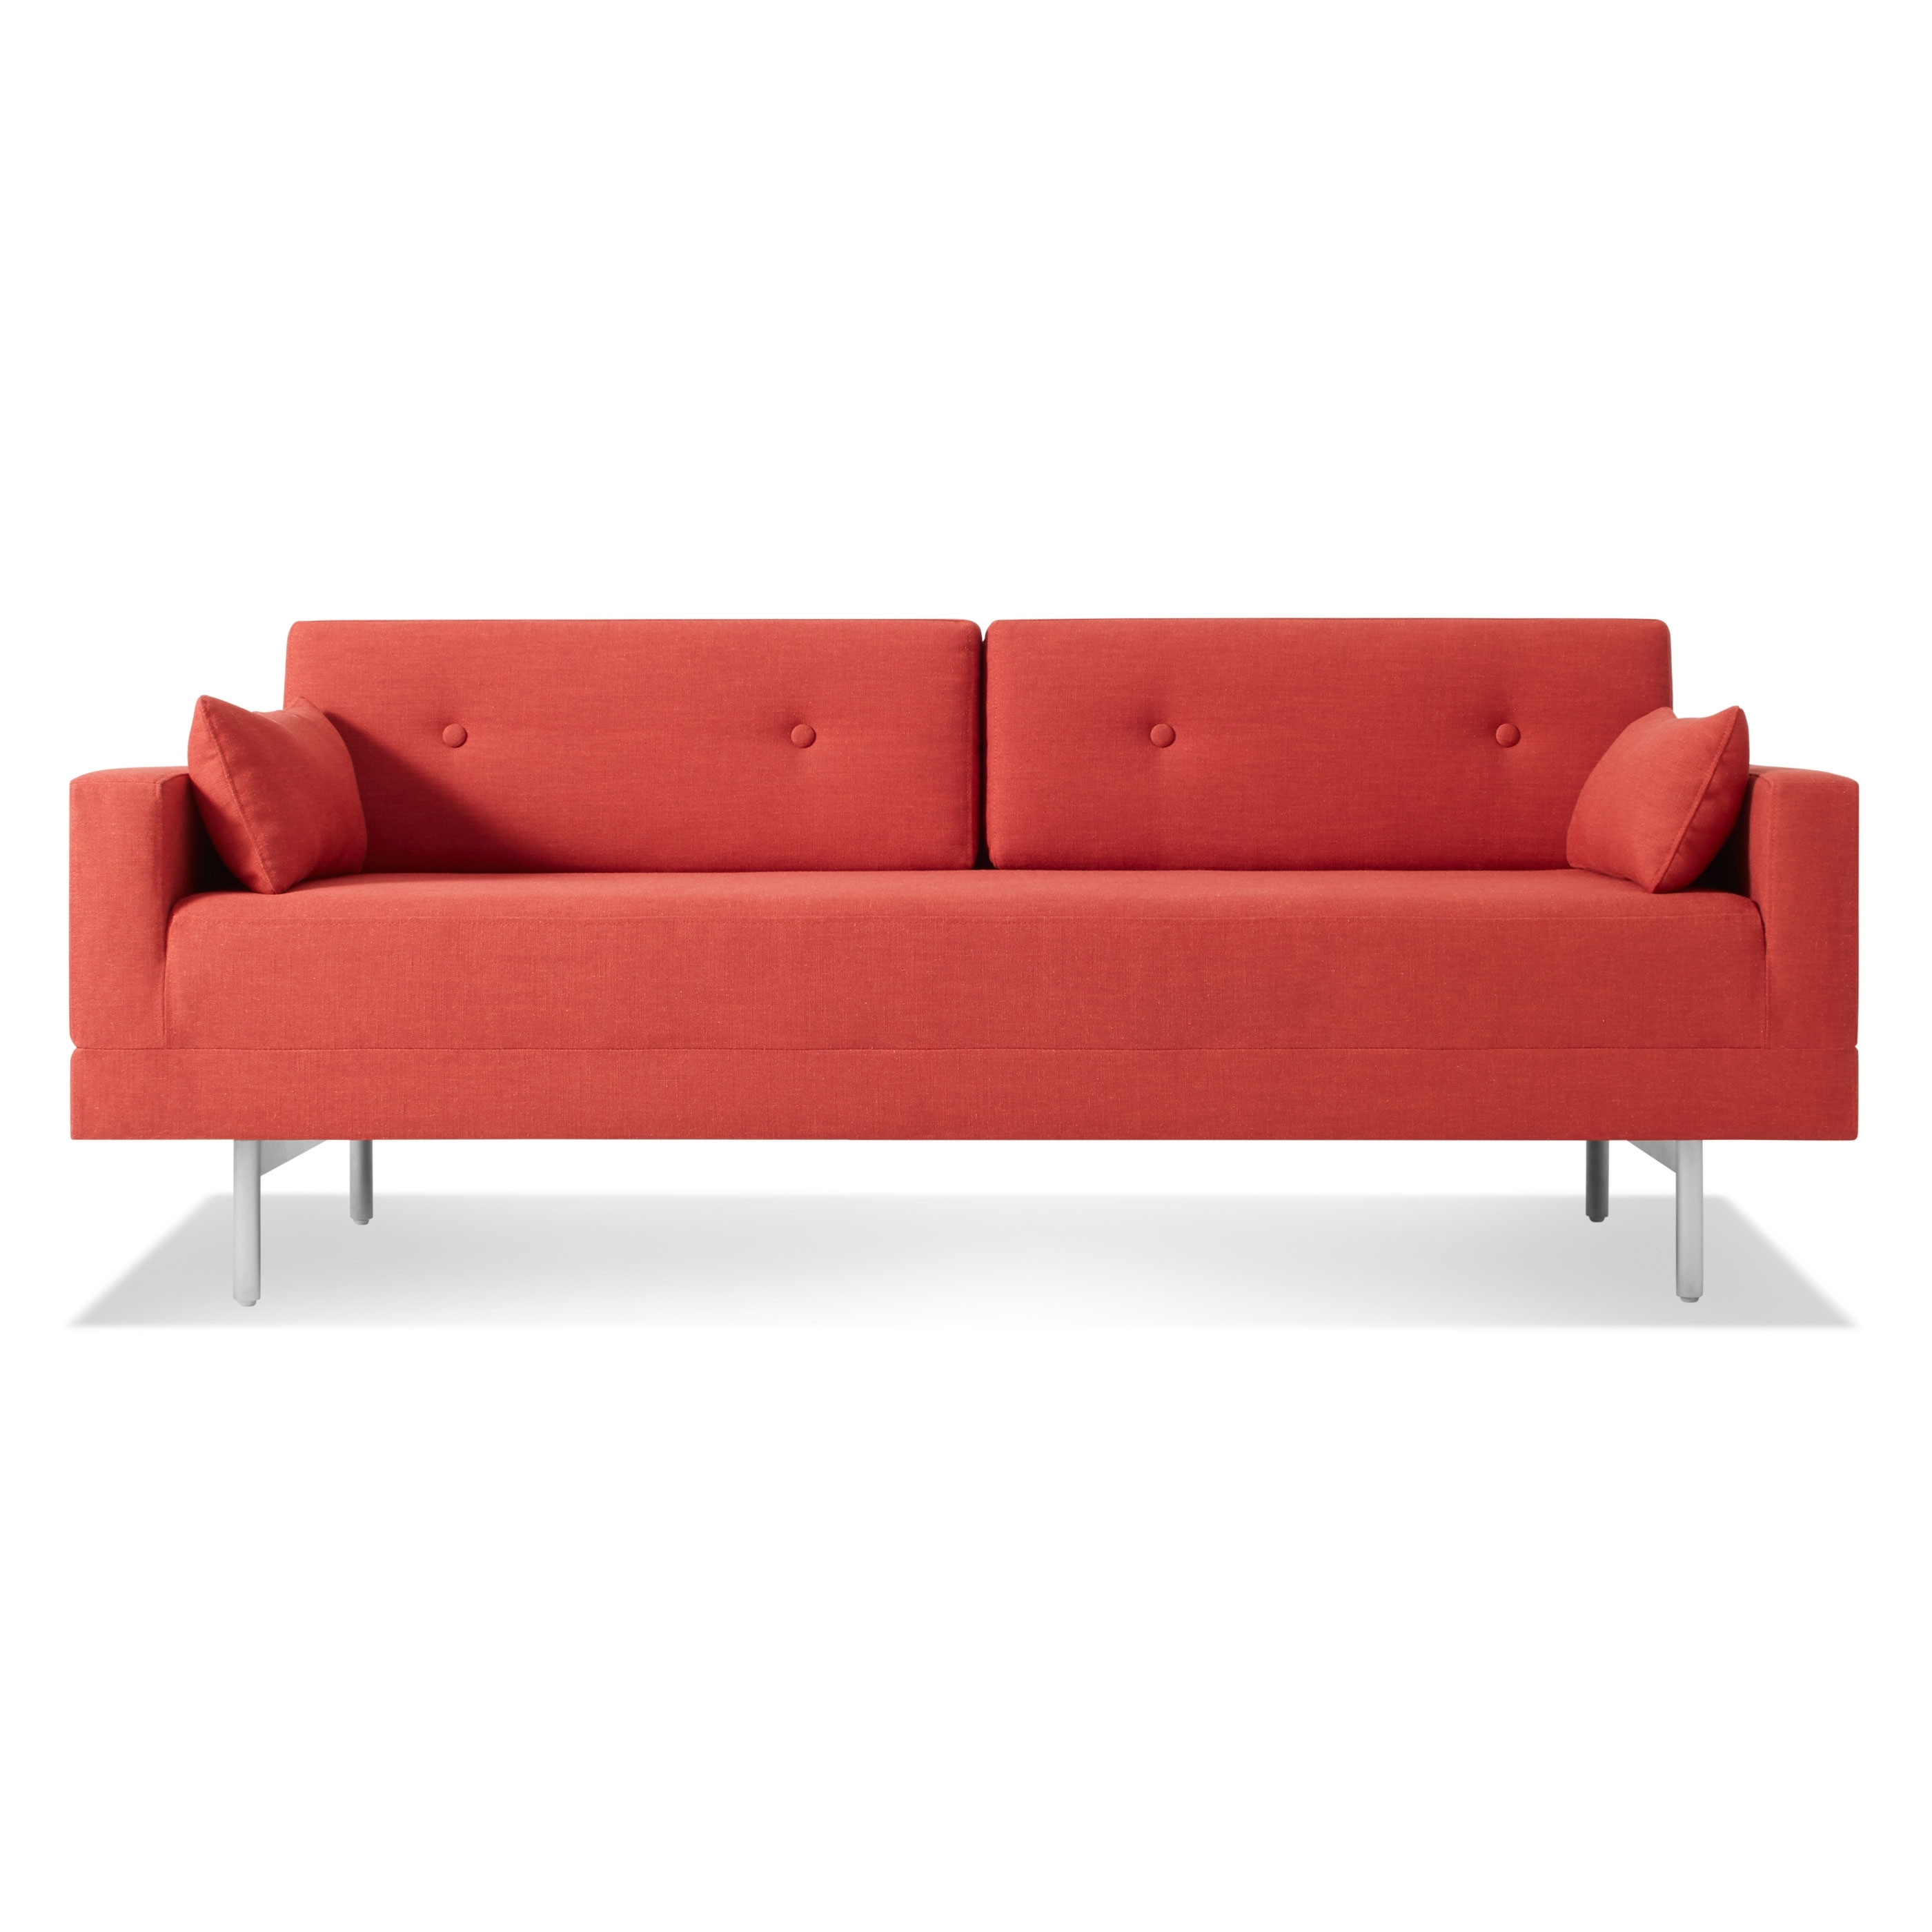 Red Sleeper Sofas Intended For Current One Night Stand Modern Queen Sleeper Sofa (View 14 of 20)